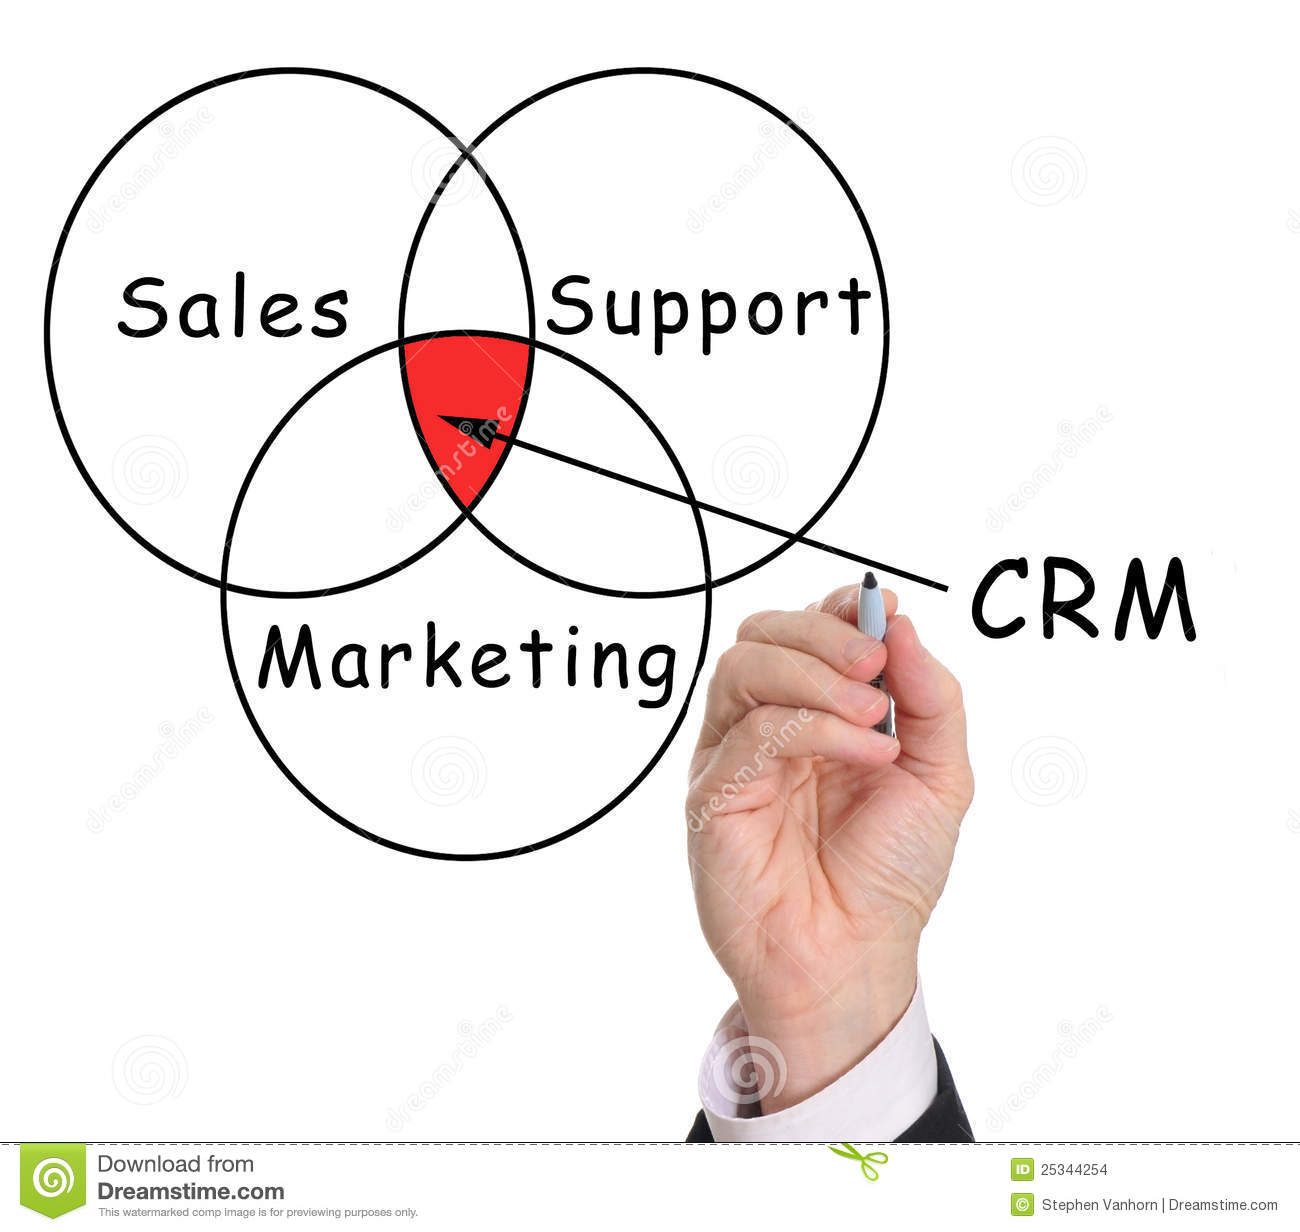 Goals Of Customer Relationship Management Customer Relationship Management Crm  Goals Of Customer Relationship Management